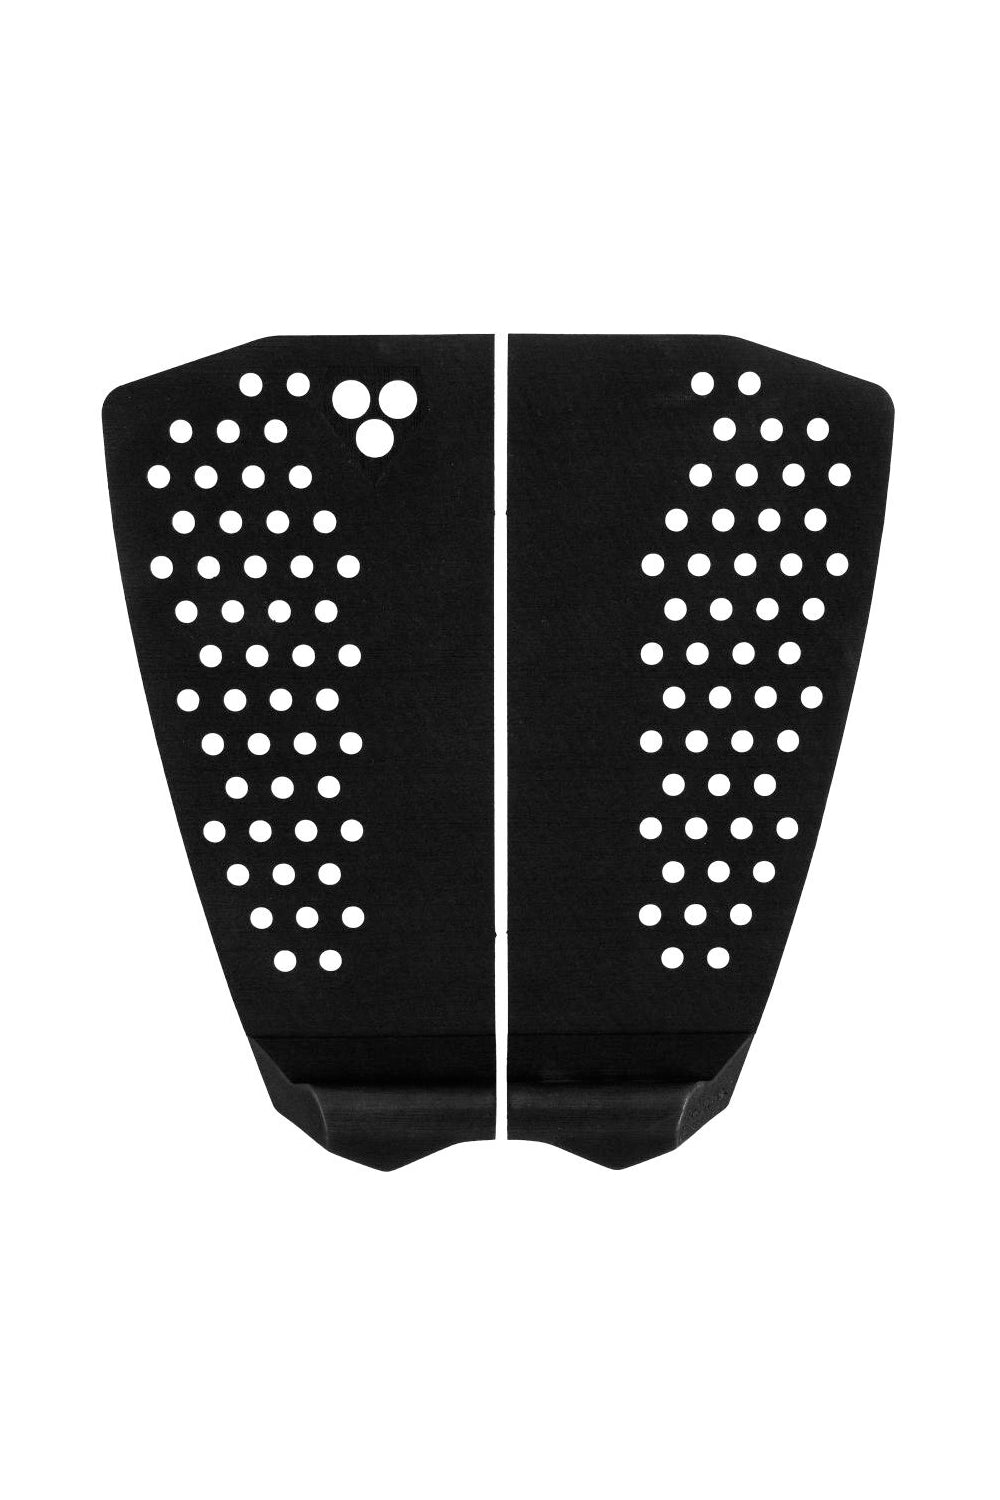 Gorilla Grip Skinny Two Traction Pad